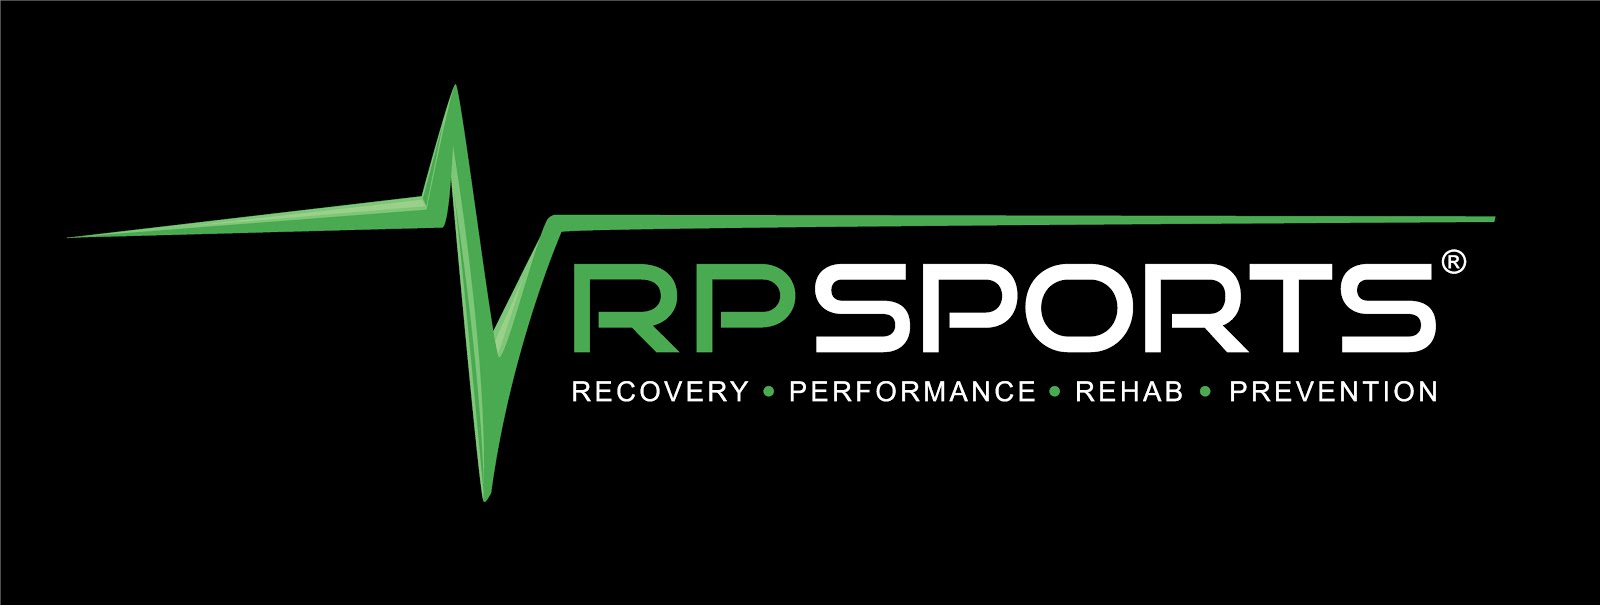 Recovery Performance Rehab Prevention